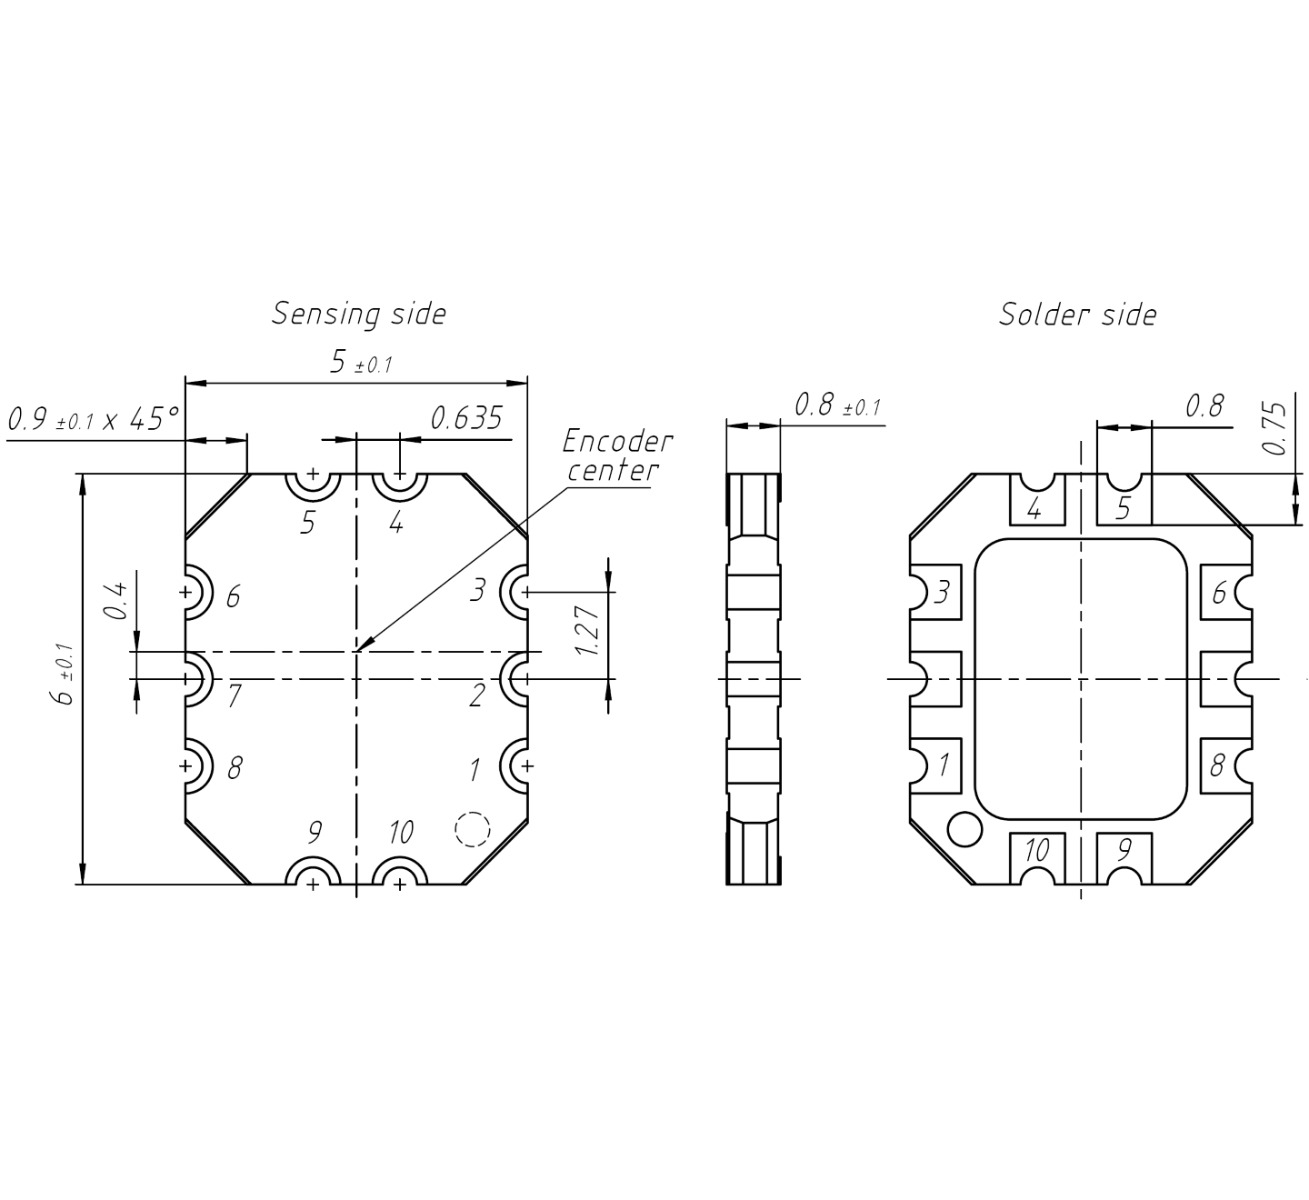 Technical drawing of the ID4501 encoder